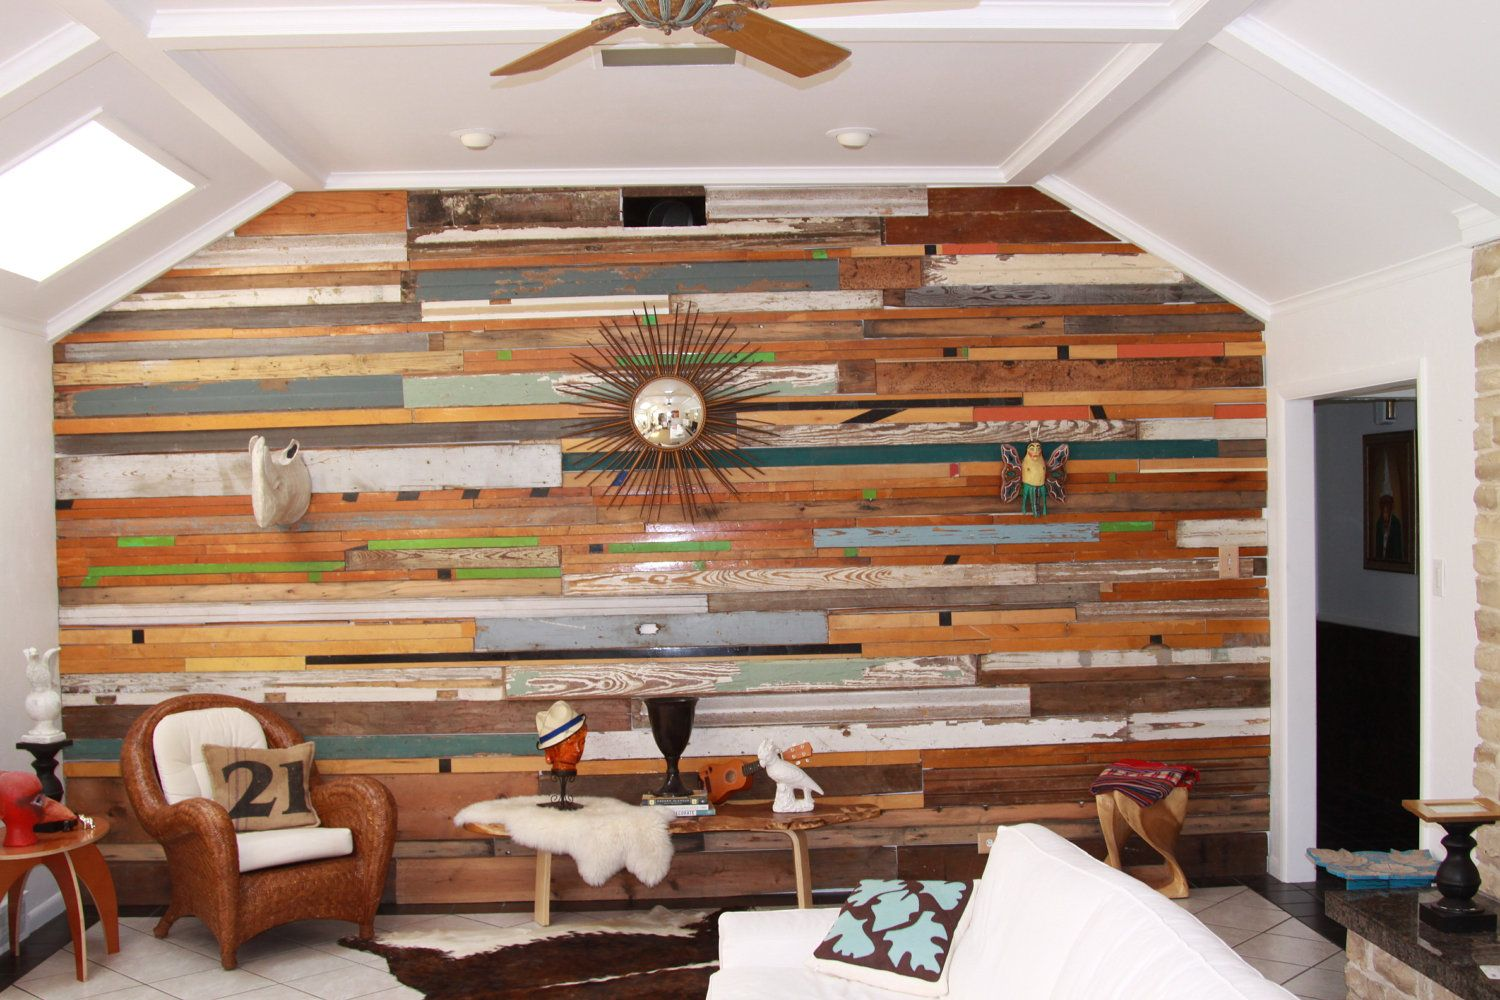 Wood Paneling With A History Reclaimed For Interiors Home Decor Walls